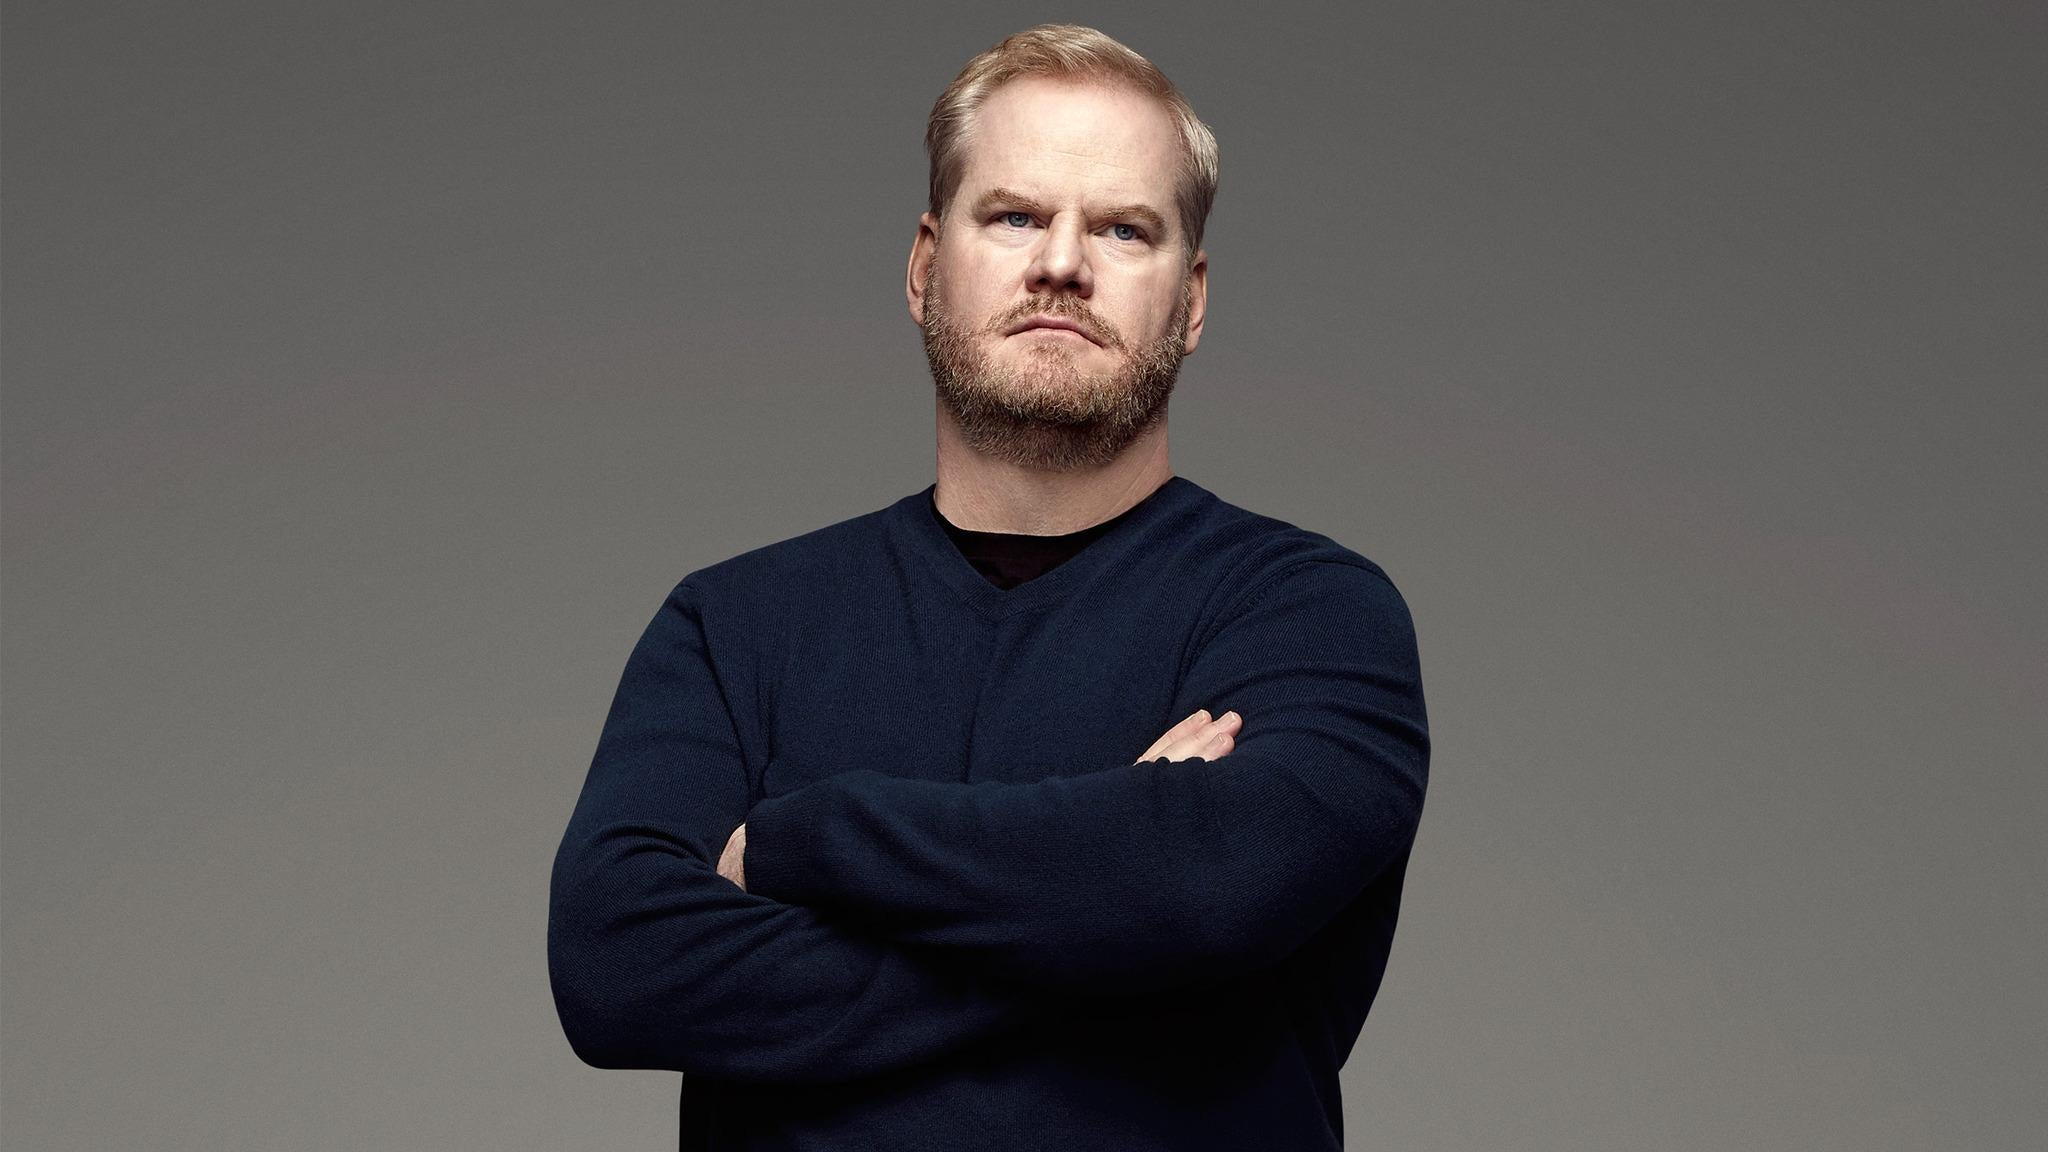 Jim Gaffigan: Fully Dressed at Neal S Blaisdell Concert Hall - Honolulu, HI 96814